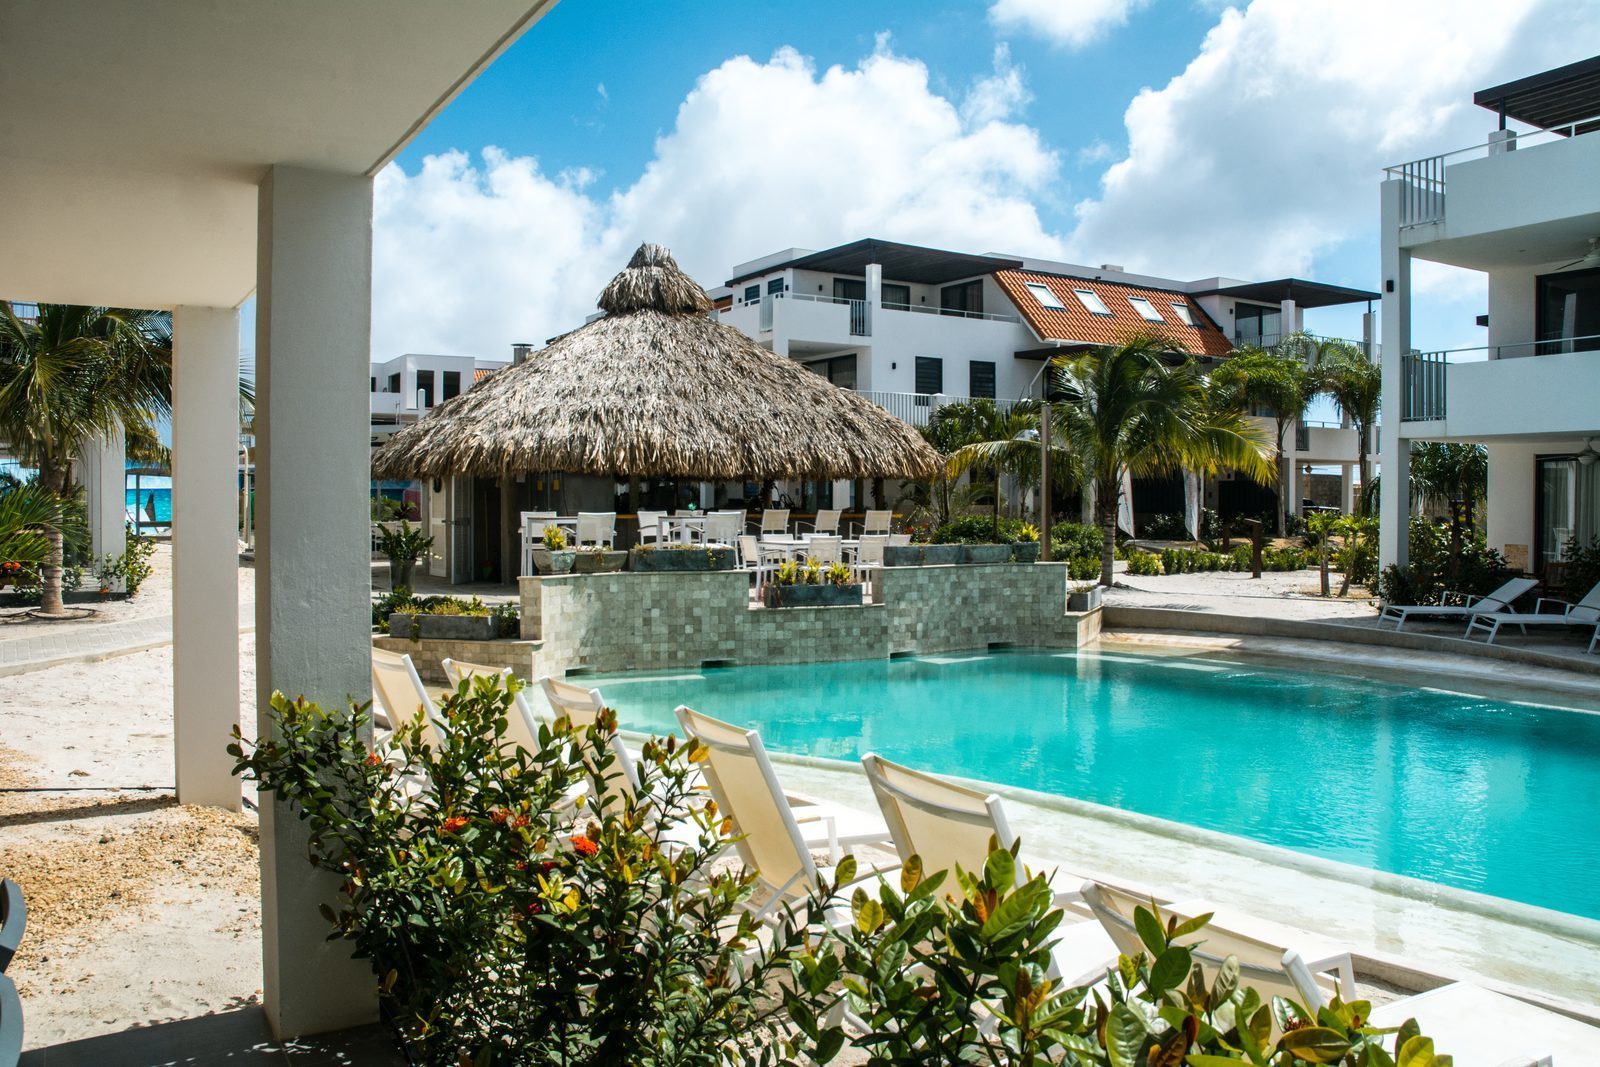 Looking for a resort on Bonaire? Resort Bonaire offers a beautiful swimming pool and luxurious apartments.